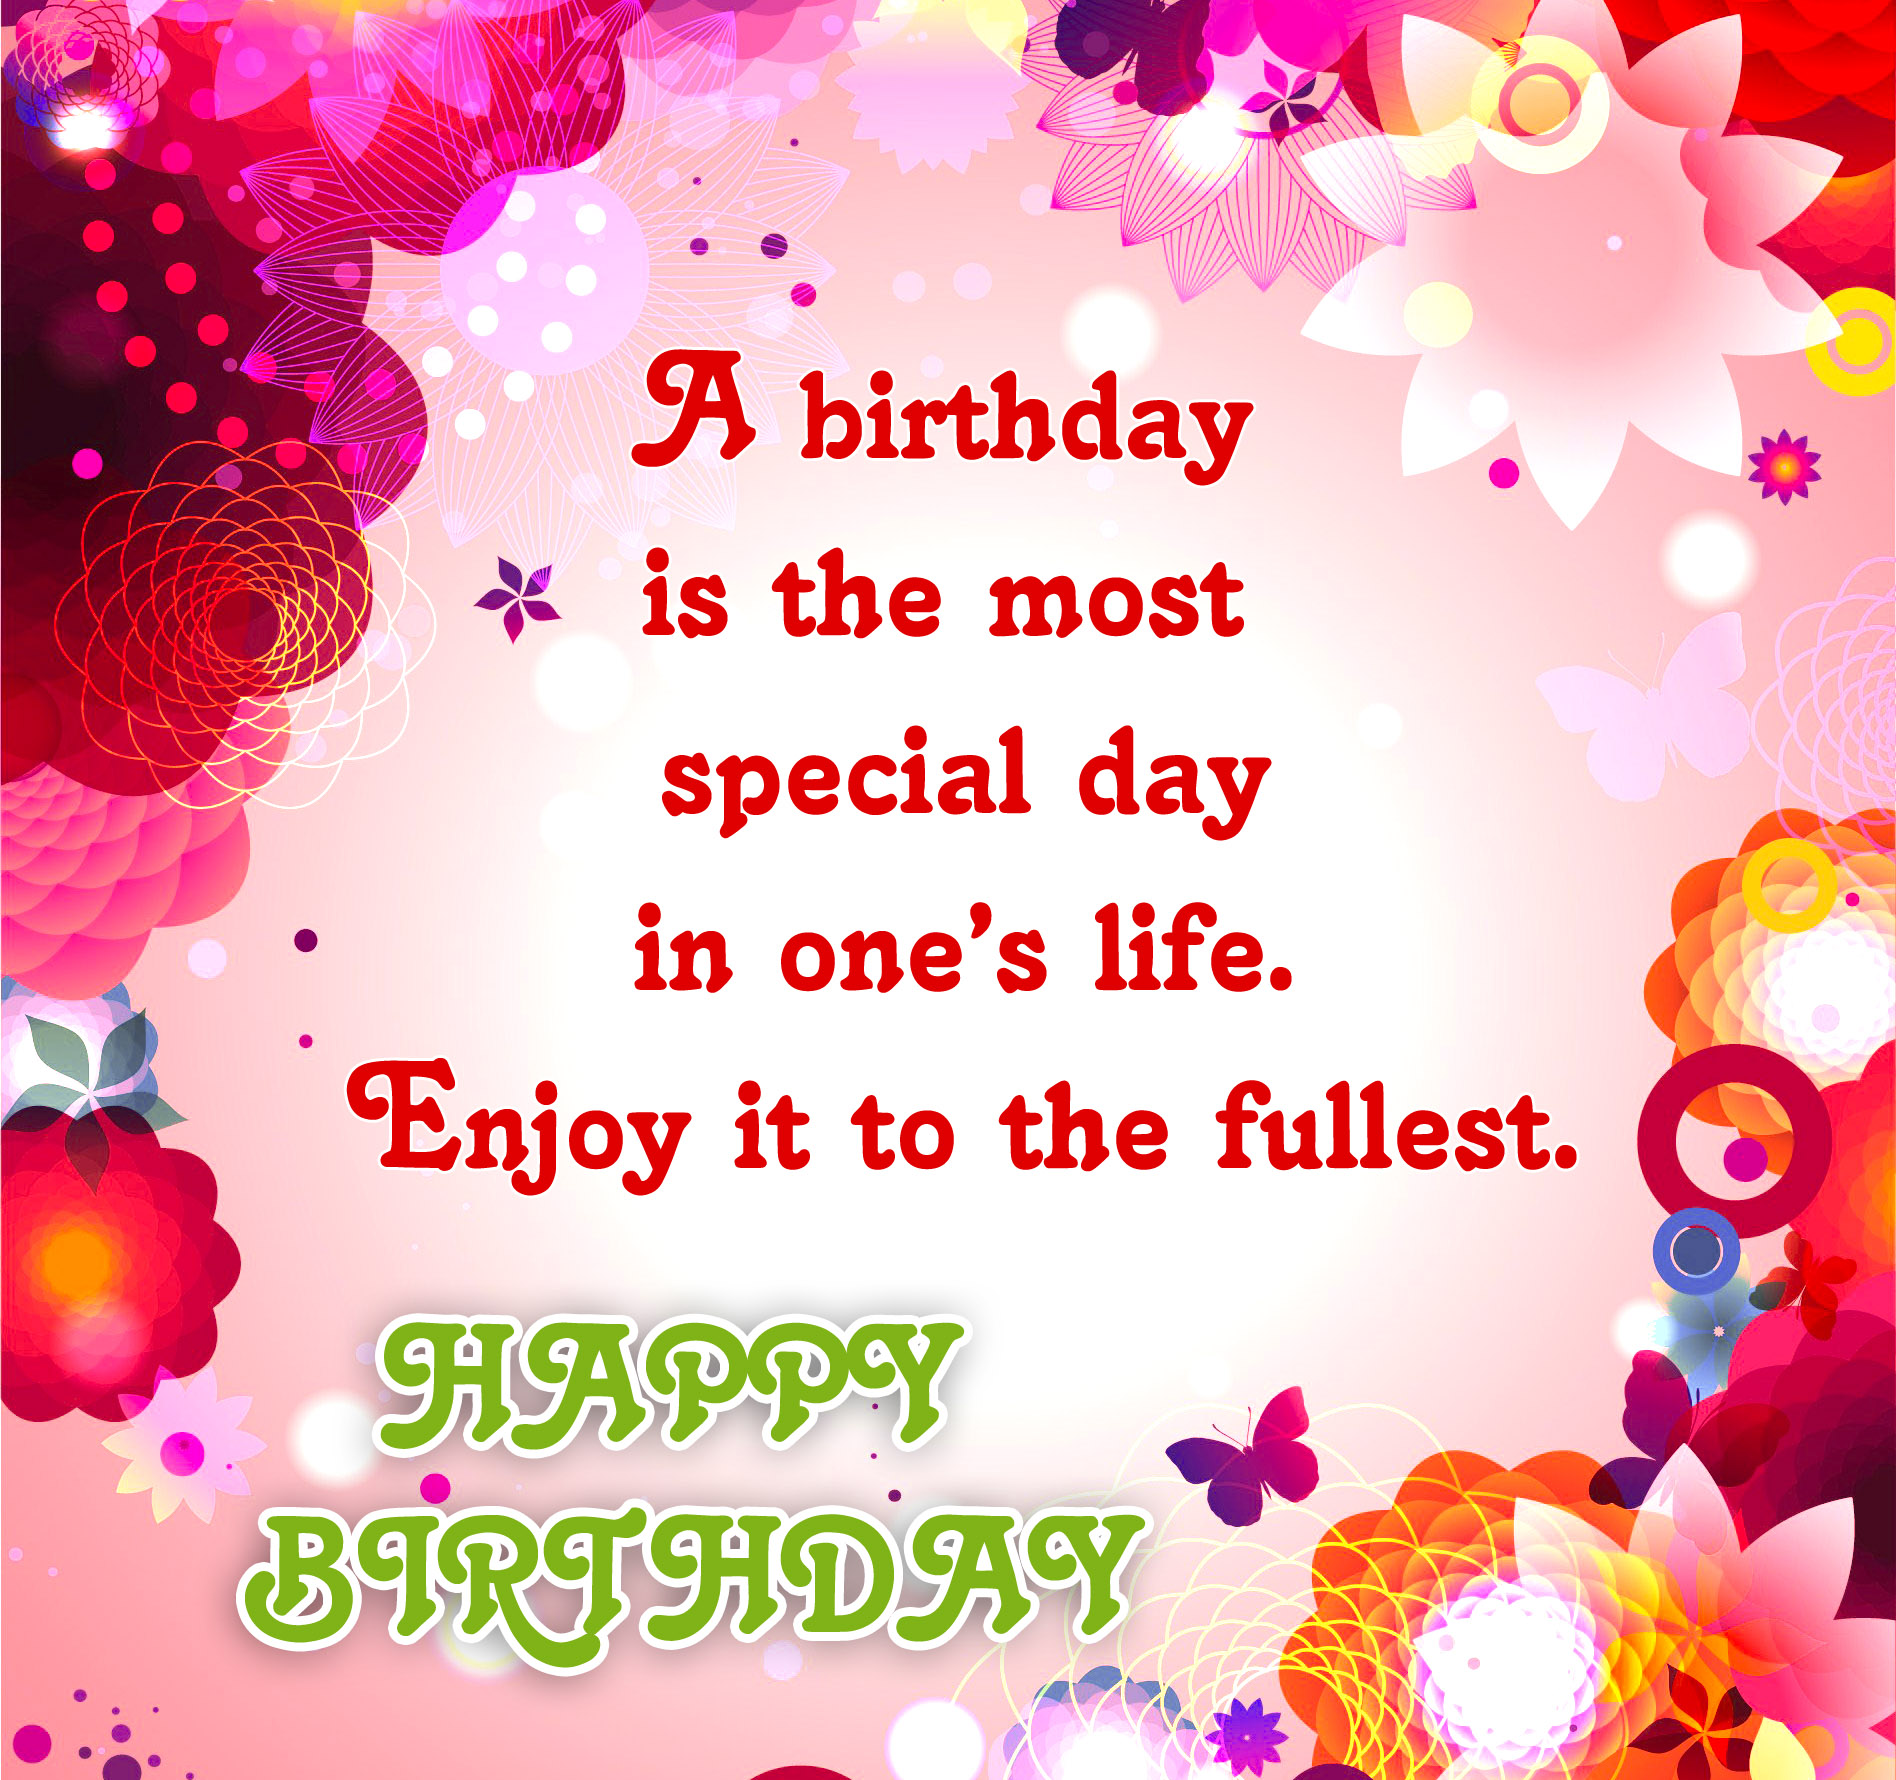 Birthday greeting cards pictures animated gifs happy bday m4hsunfo